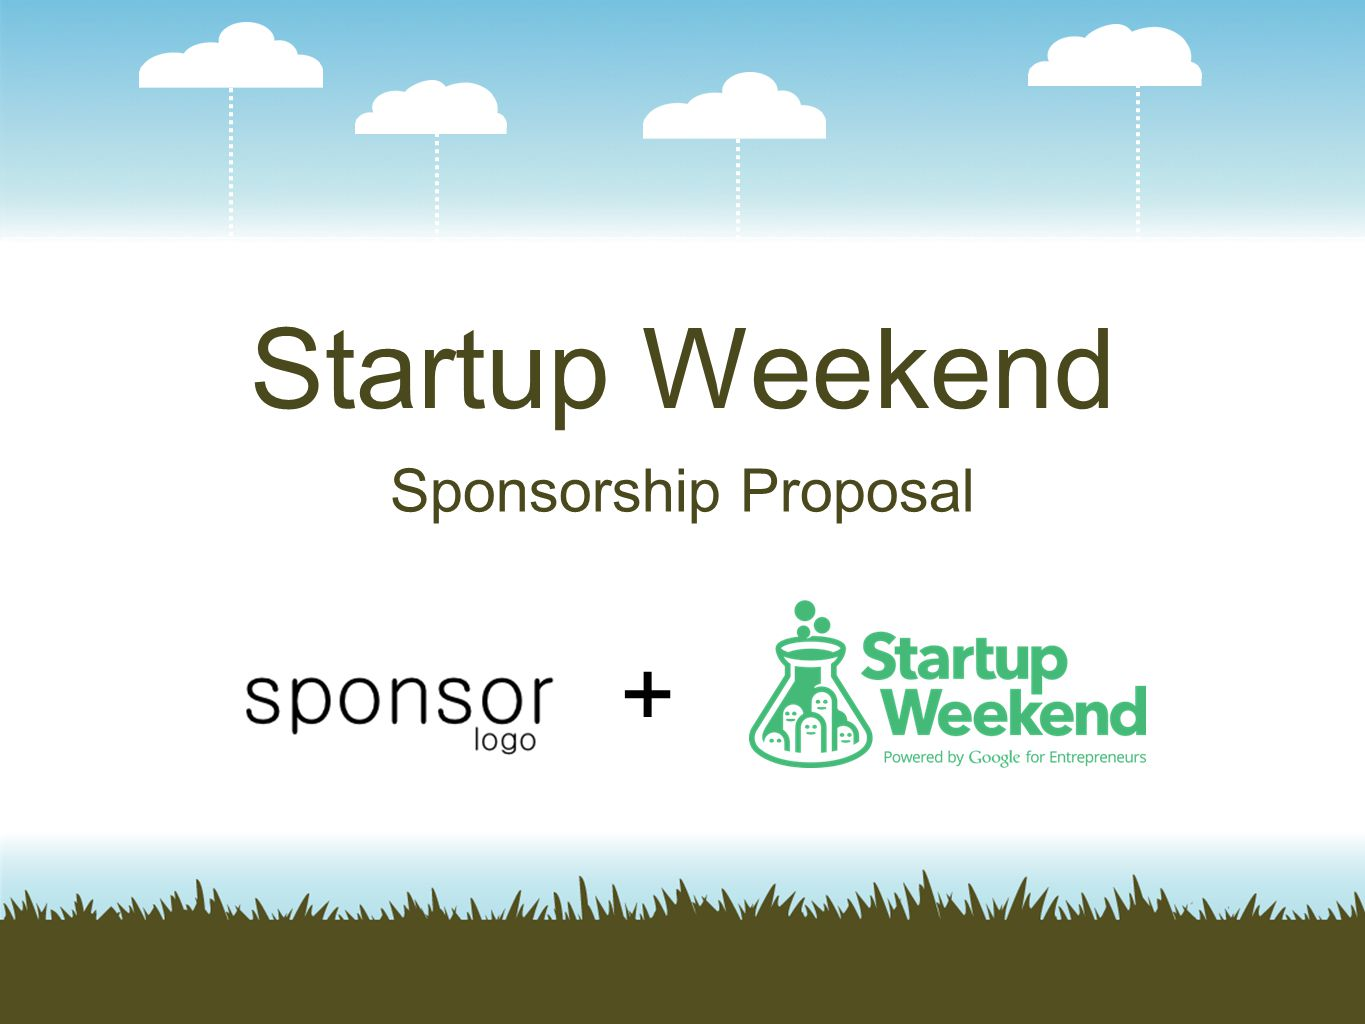 Startup Weekend Sponsorship Proposal +